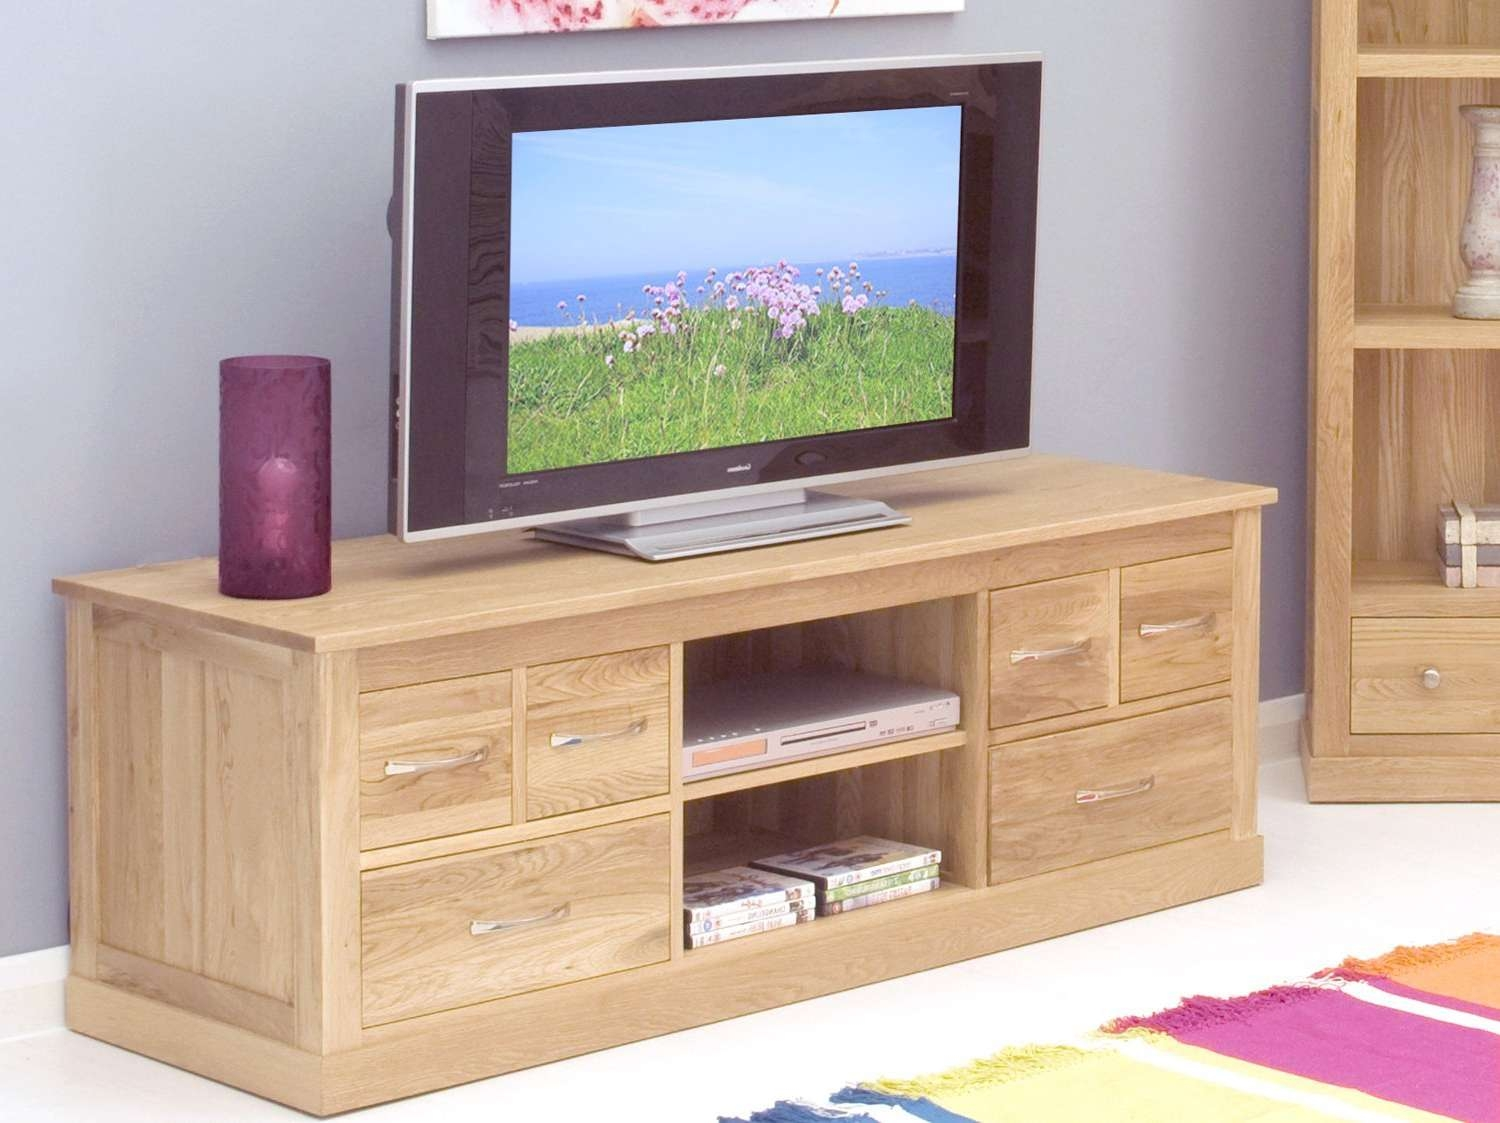 Honey Oak Tv Stand : Innovative Designs Oak Tv Console – Marku Inside Honey Oak Tv Stands (View 2 of 15)